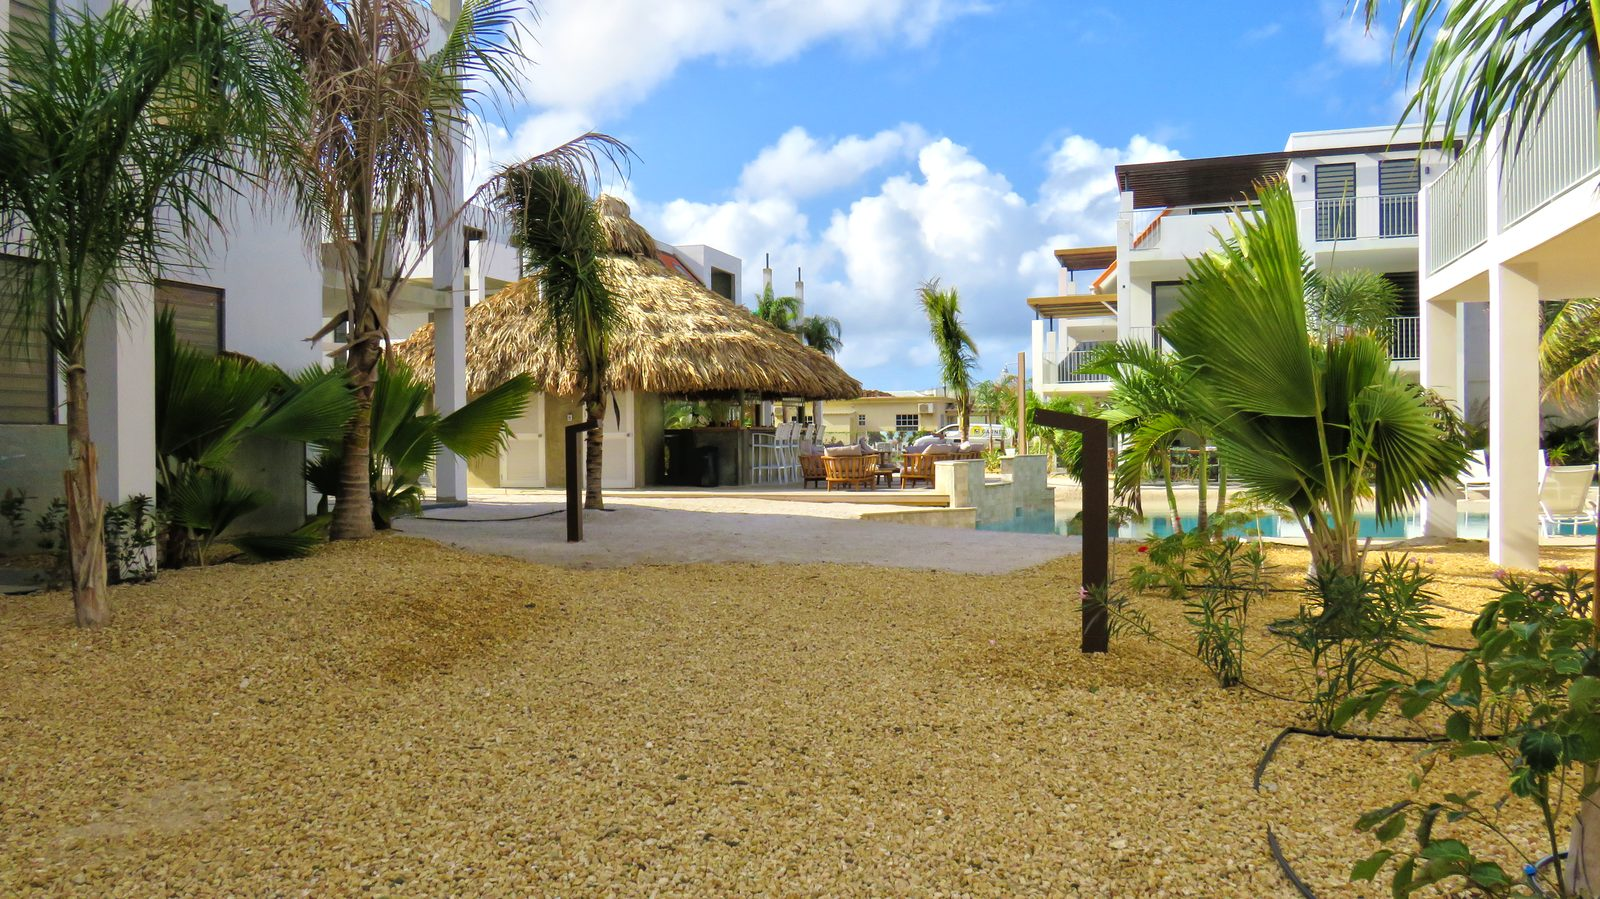 One of the best places to stay on Bonaire, is Resort Bonaire. A good place for couples and families to relax and enjoy.